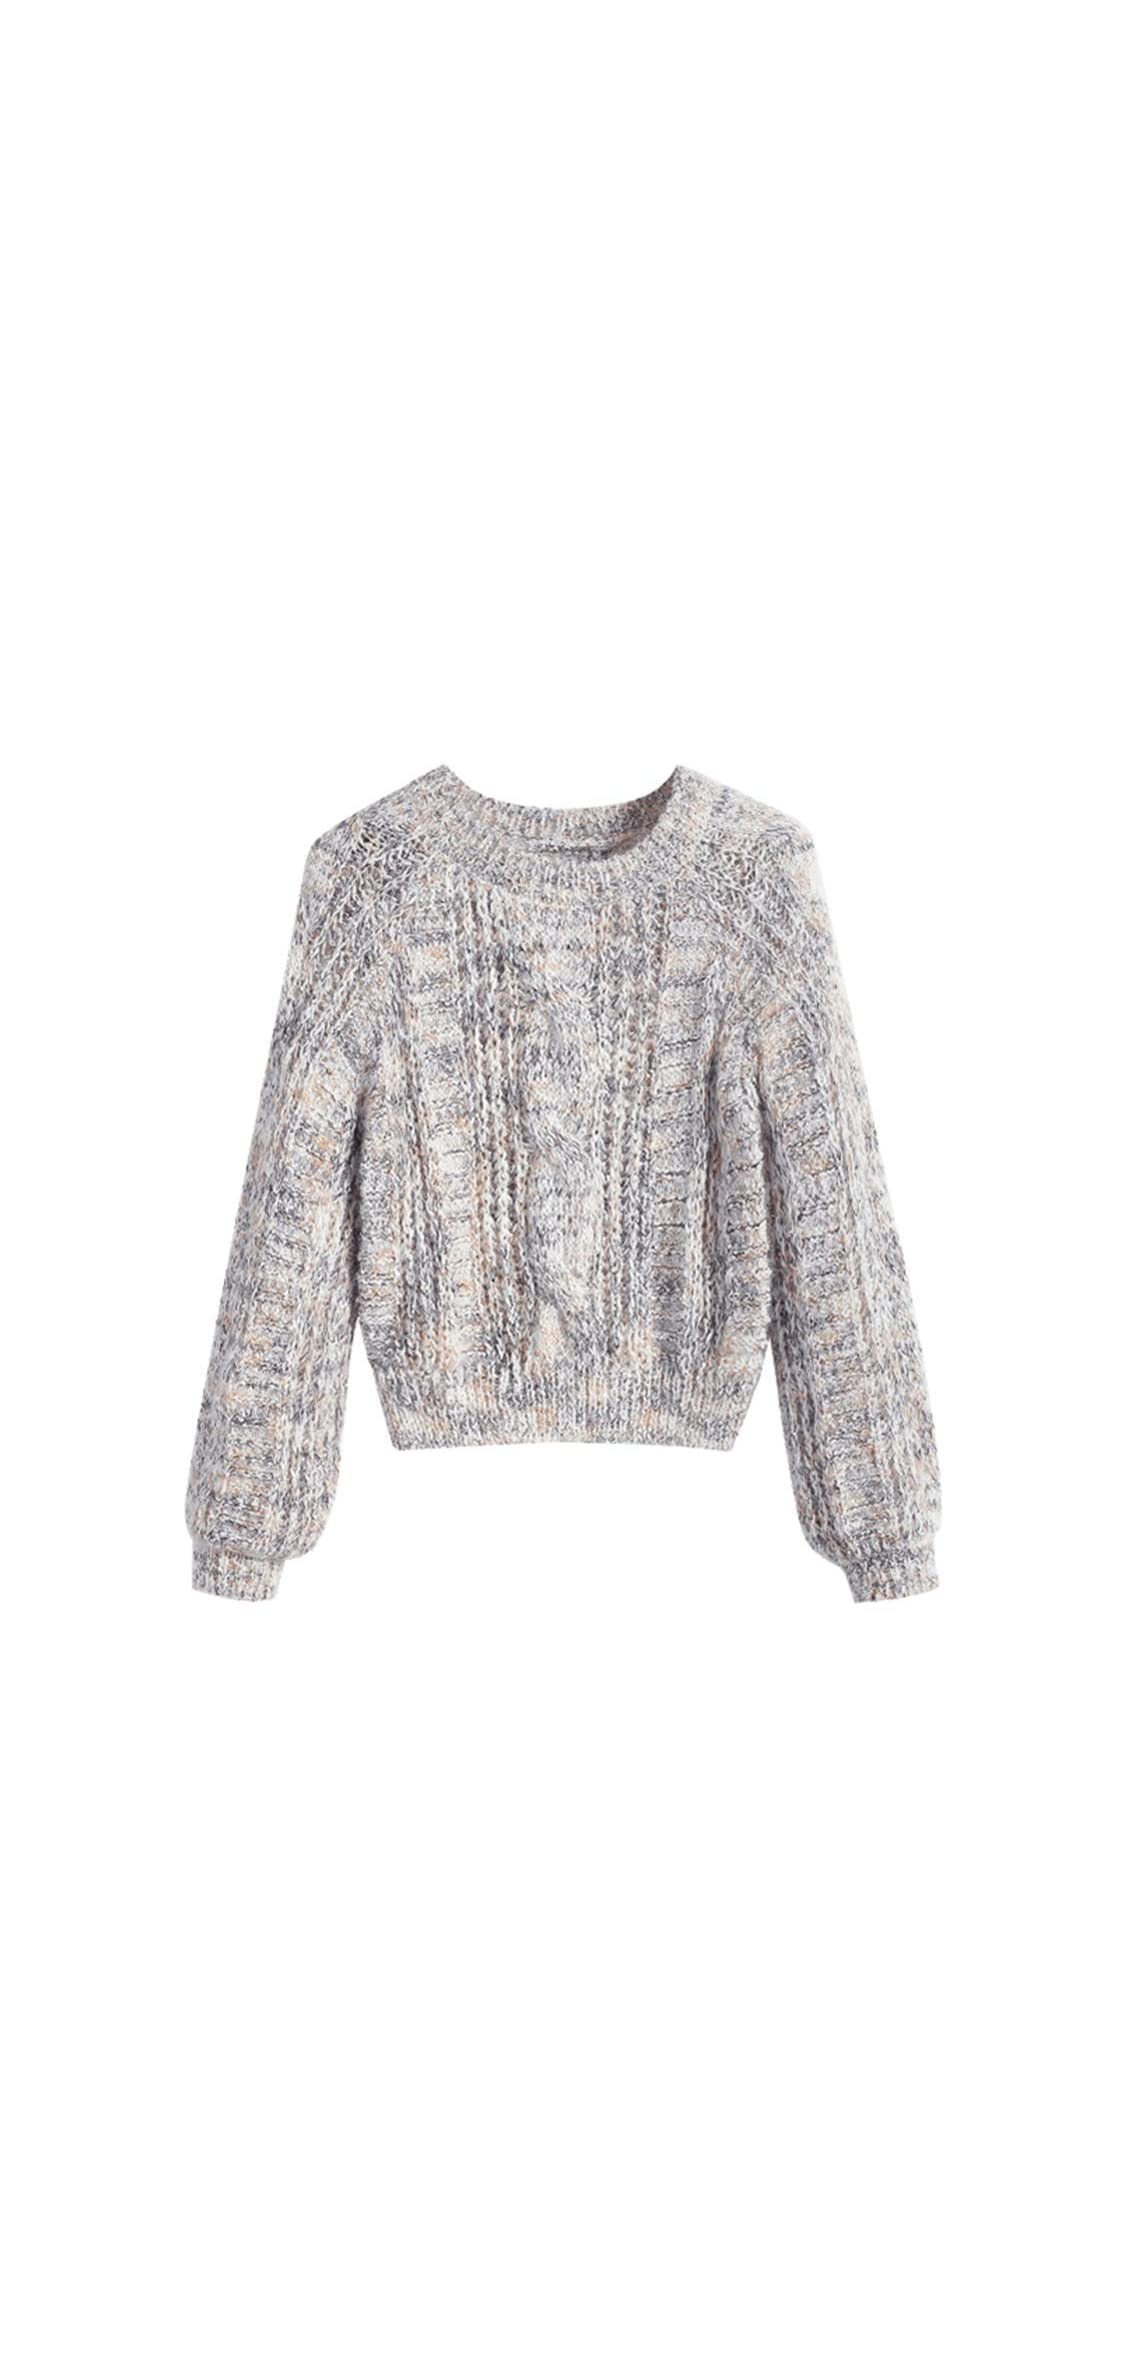 Women's Heathered Cable Knit Chunky Sweater Crew Neck Top